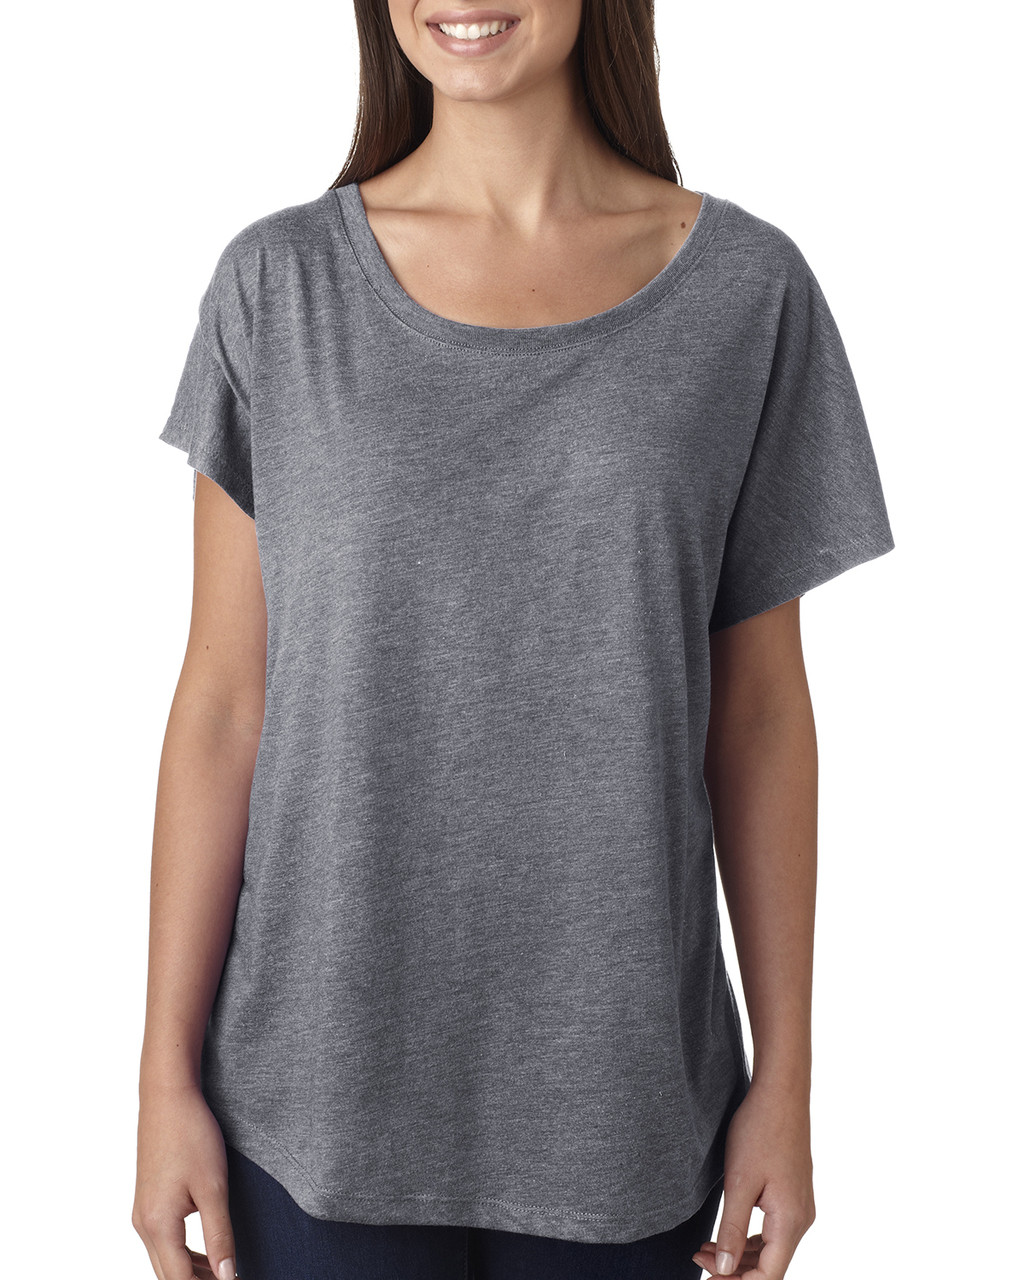 Premium Heather -  6760 Next Level Ladies' Triblend Dolman Shirt | BlankClothing.ca